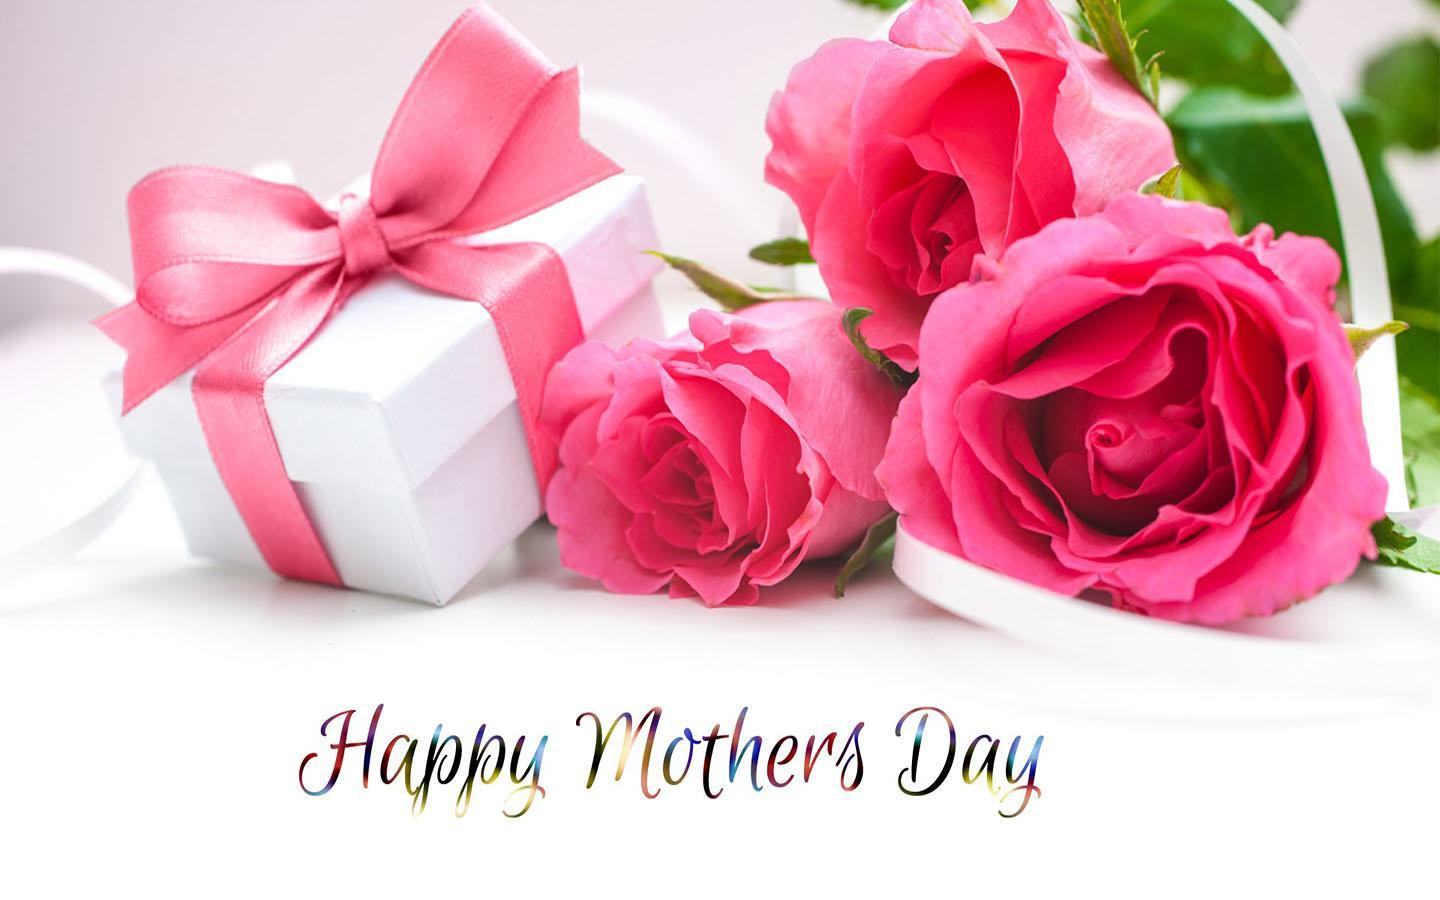 Ecards and Greeting Cards Of Happy Mothers Backgrounds